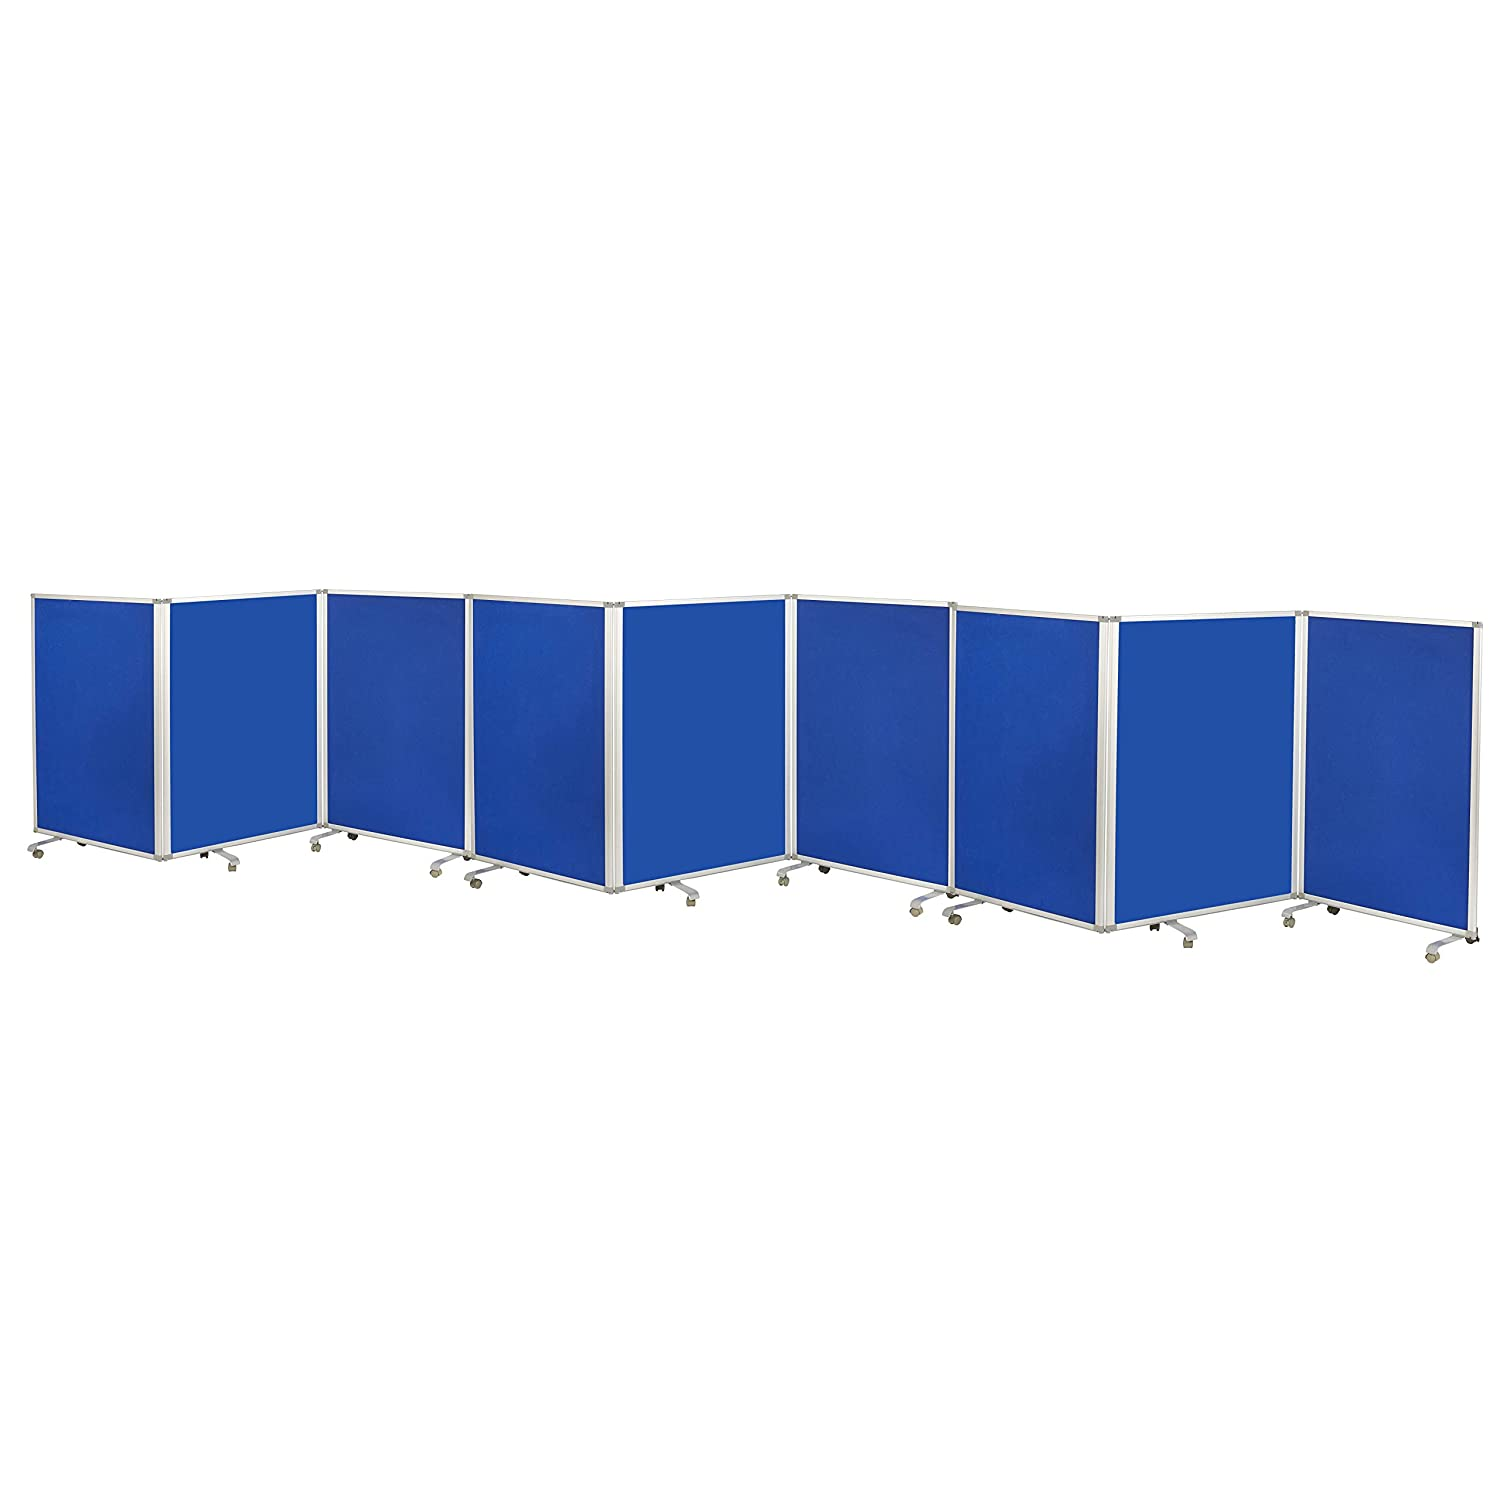 ECR4Kids Mobile Flannel Felt Room Divider and Partition, Double-Sided, Rolling Caster Wheels, Lesson Board, Mobile Wall for Classrooms and Offices, Collapses for Easy Storage, 9-Panel